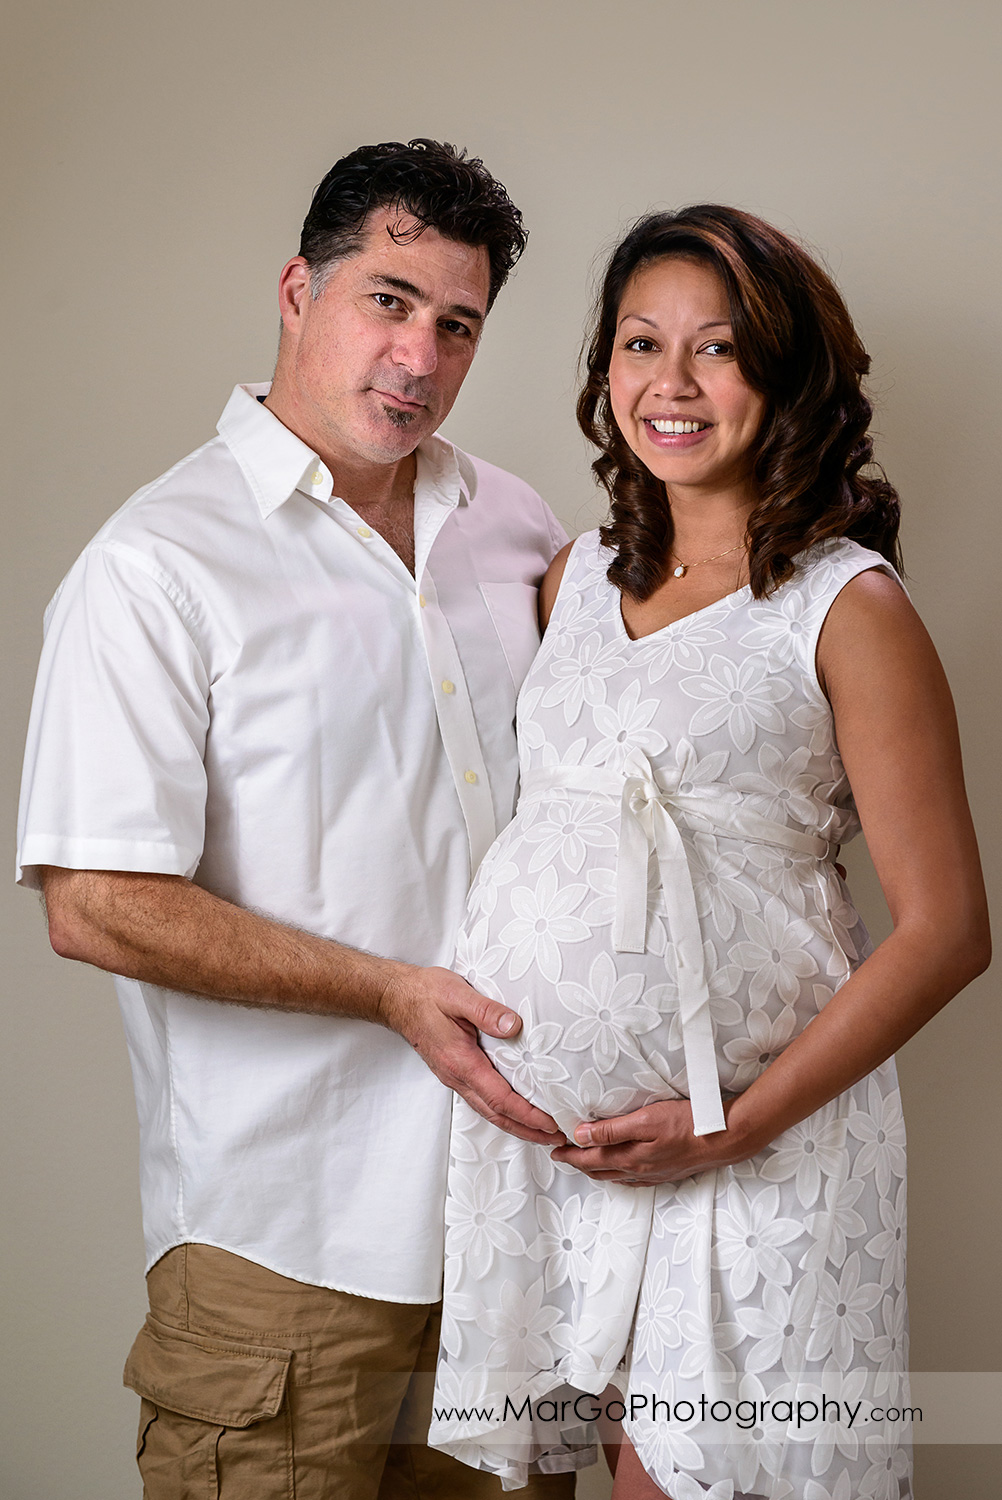 pregnant woman in white dress and man in white shirt facing each other and looking into camera during maternity session